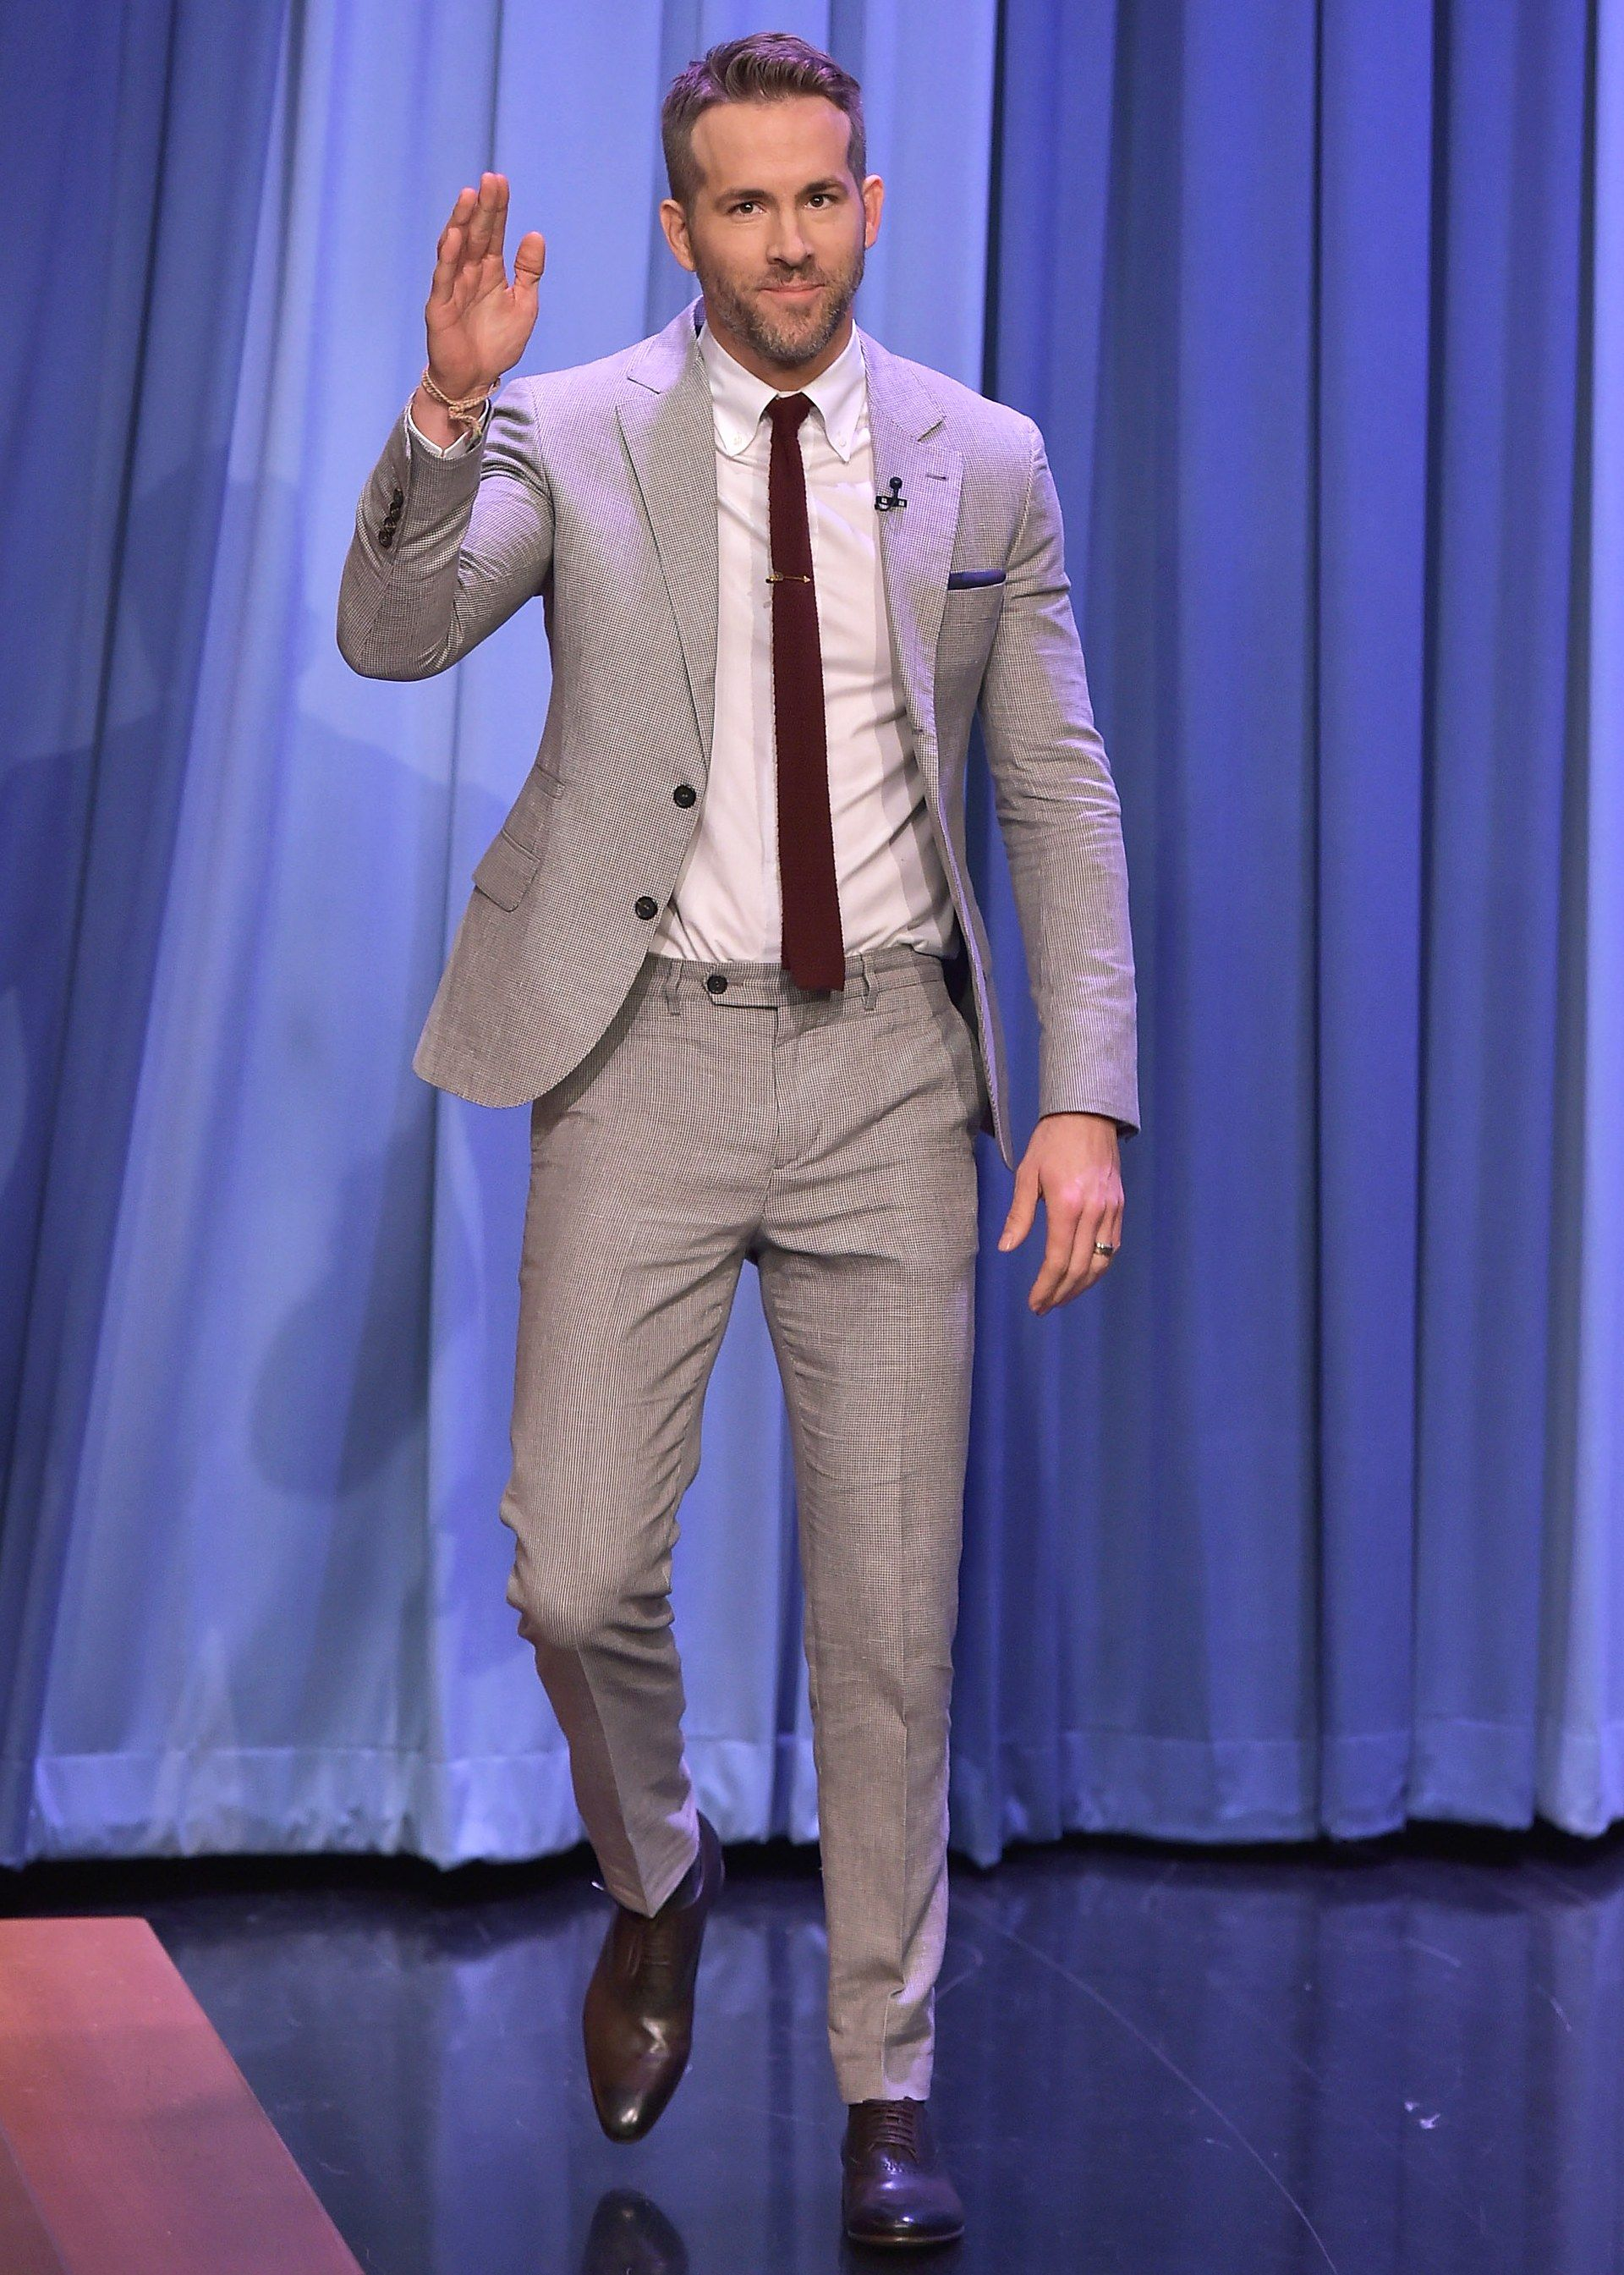 Ryan Reynolds's 11 Best Double-Take Outfits | Knit tie, Ryan ...